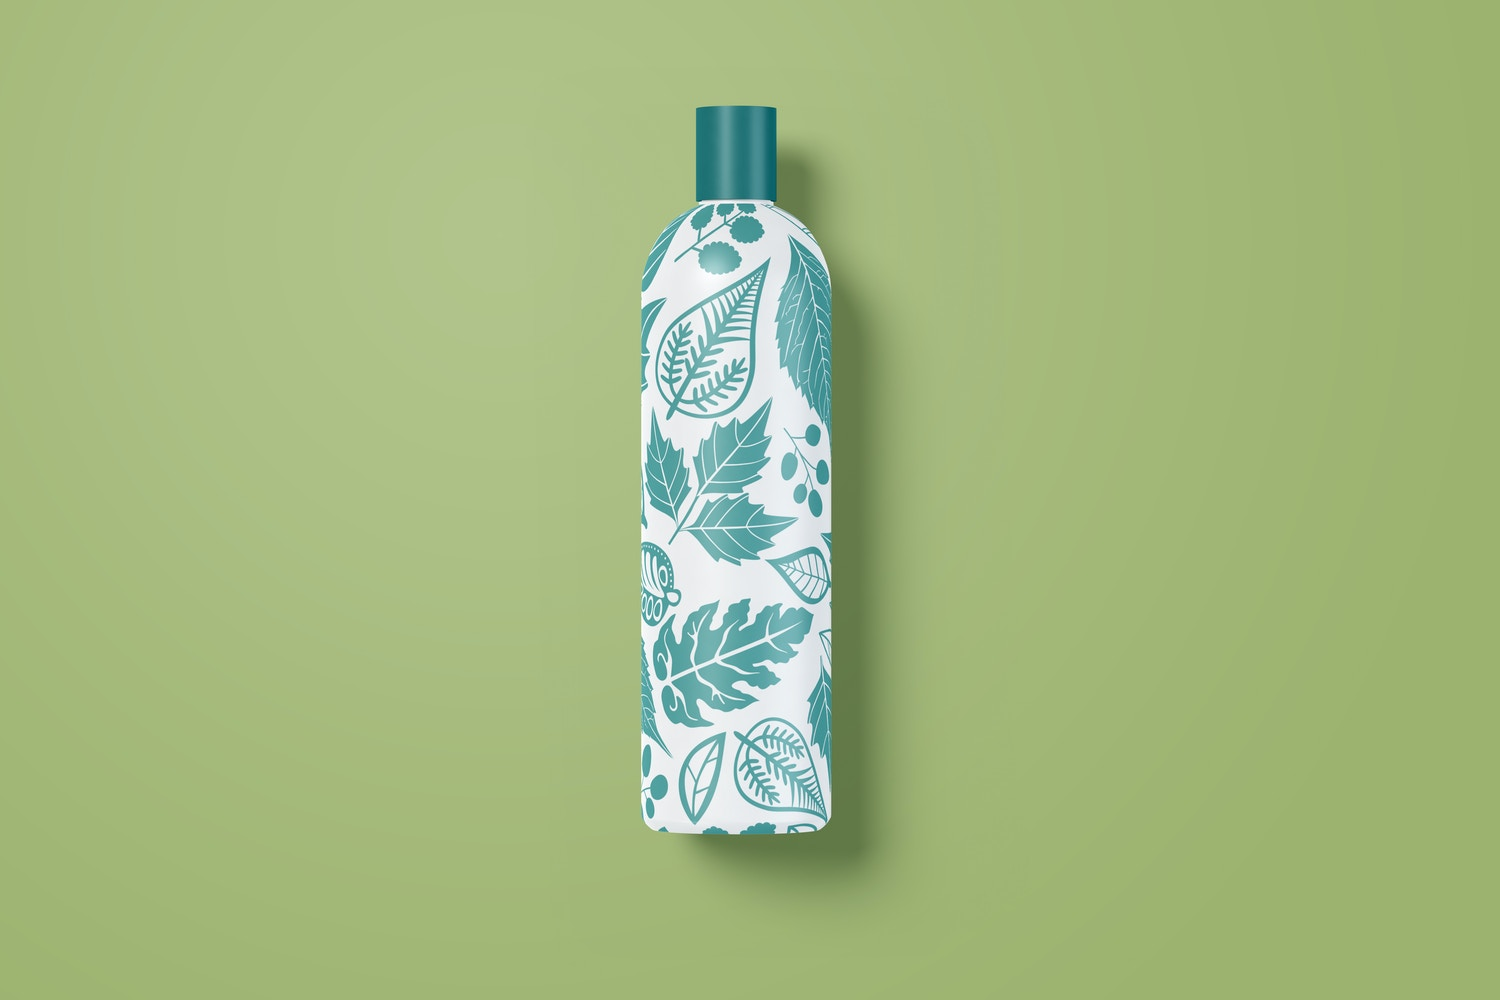 8 oz / 240 ml Cosmo Round Shape Cosmetic Bottle Mockup with Disc Cap in Front View